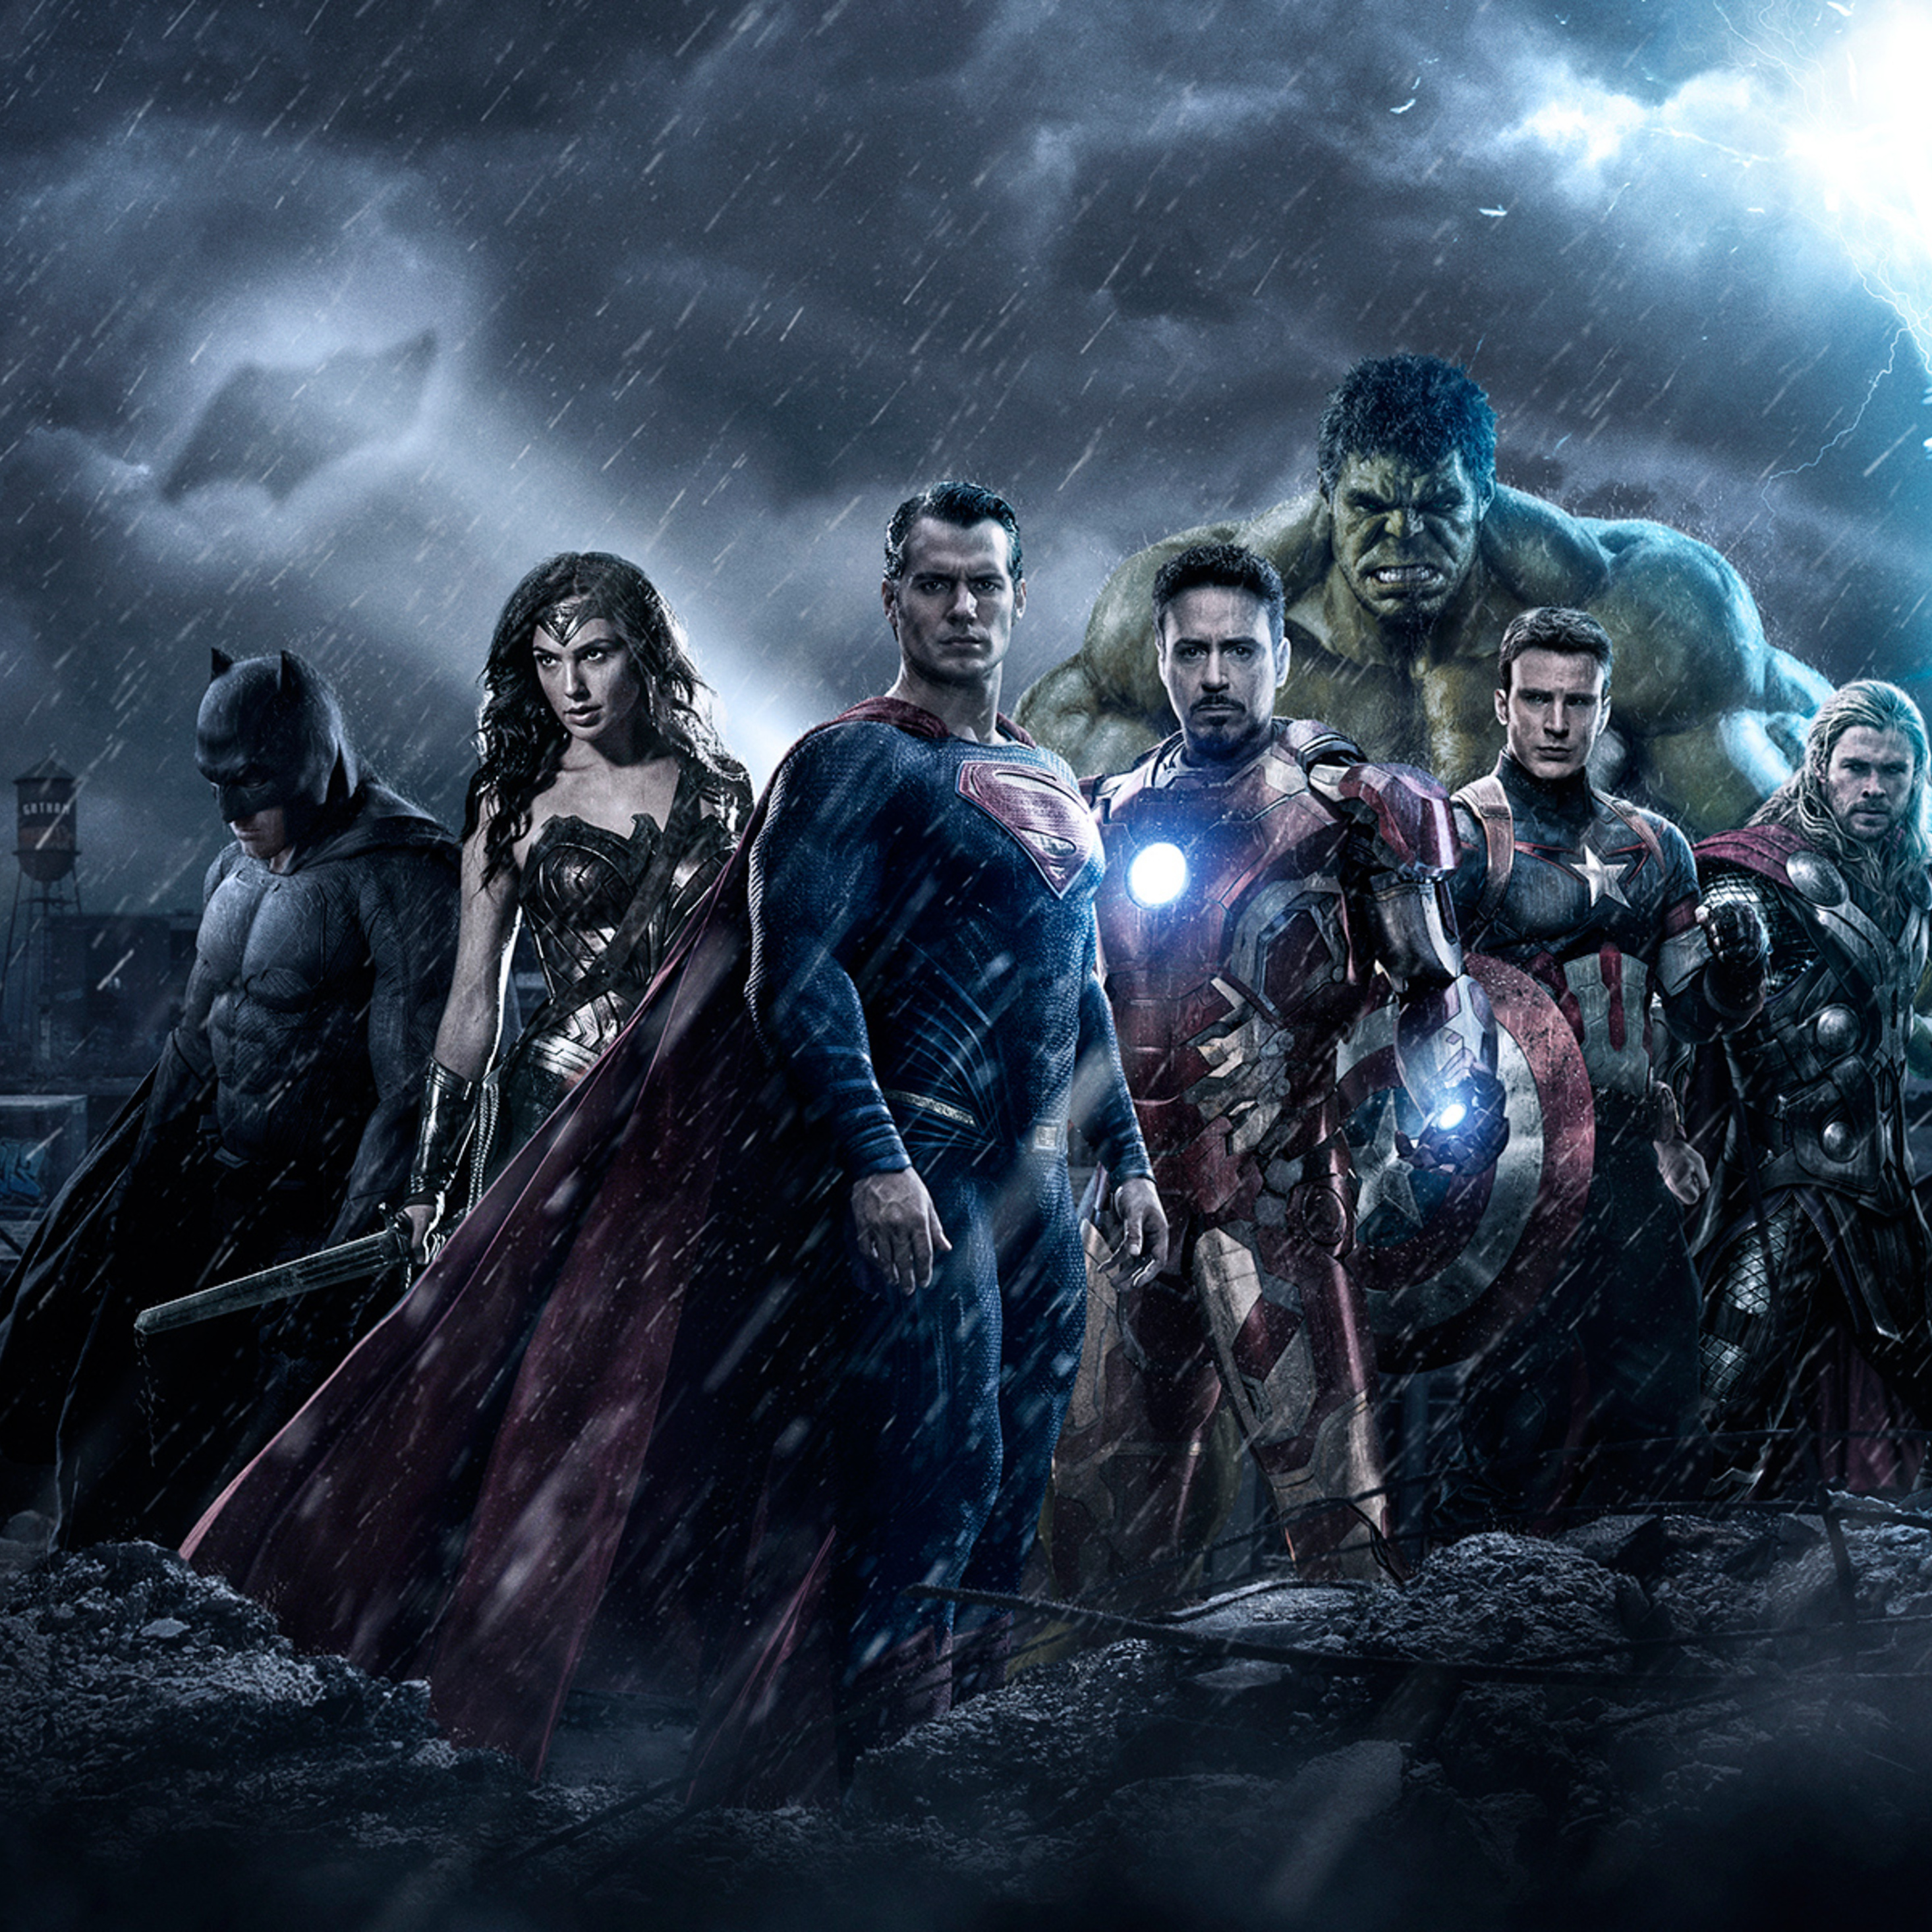 the-avengers-vs-justice-league-7s.jpg